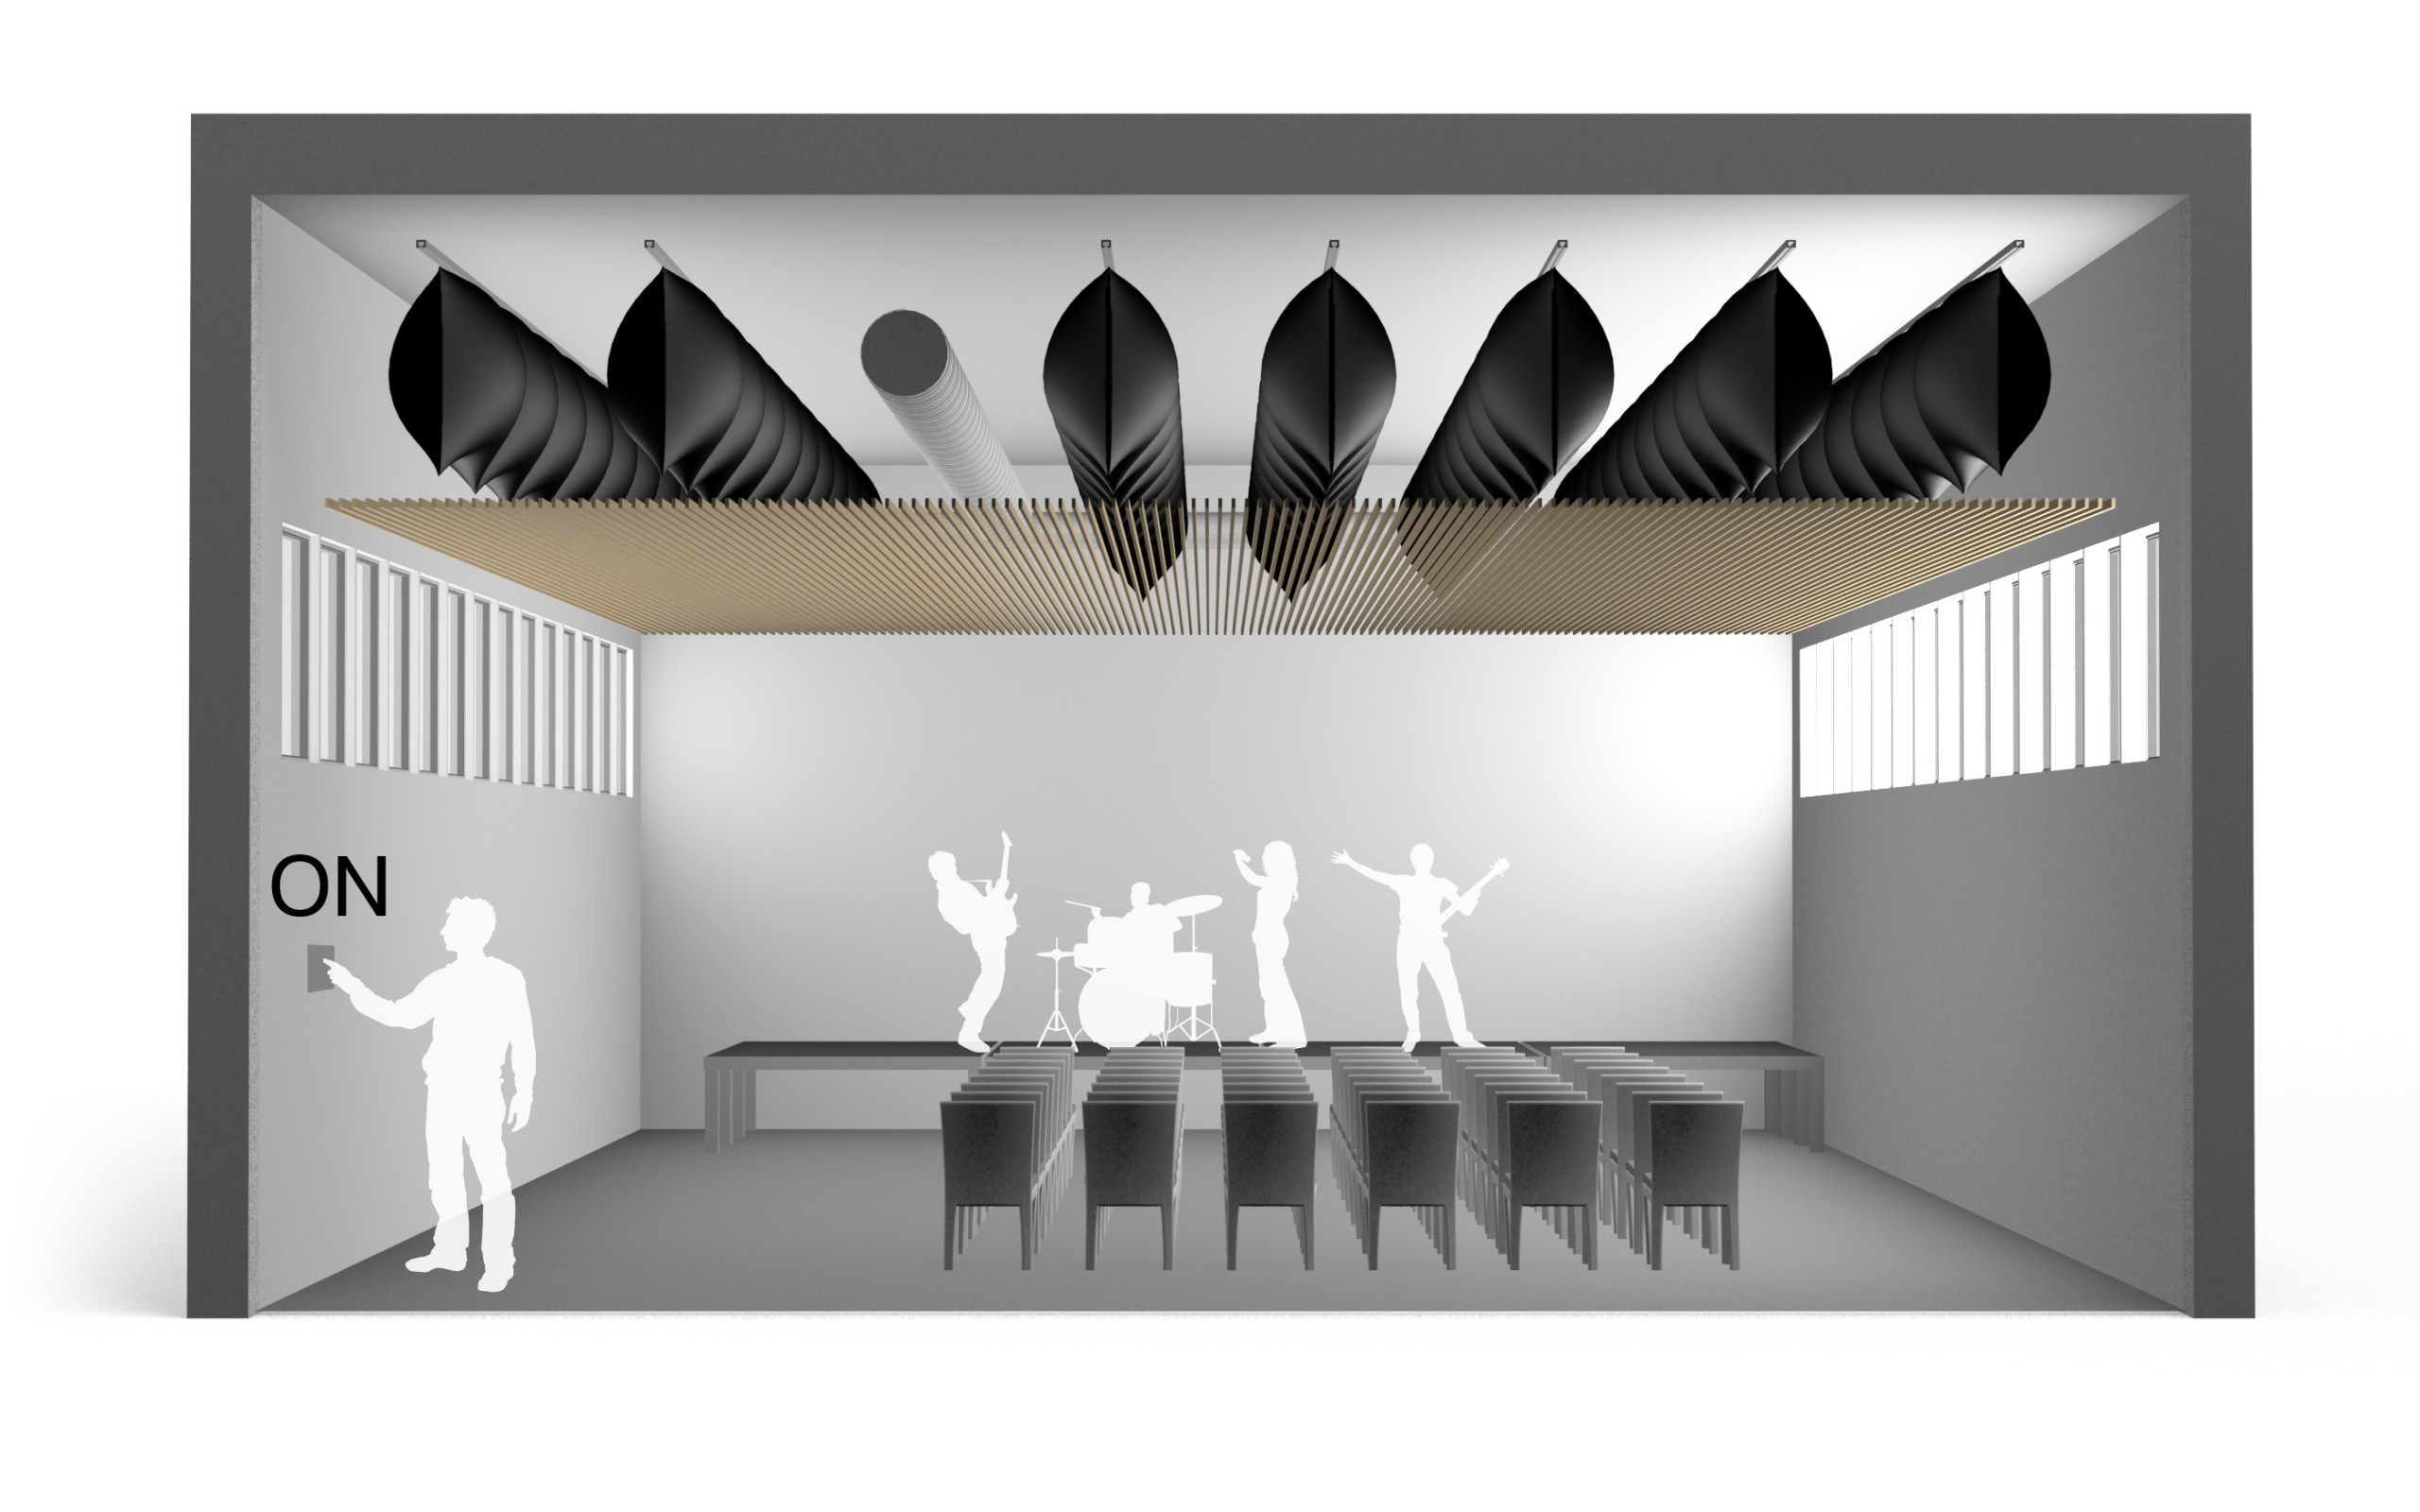 Variable sound absorption with inflatable membranes on for amplified and loud music - variable acoustics - sound absorption - performing arts - Flexacoustics - aQflex - aQtube